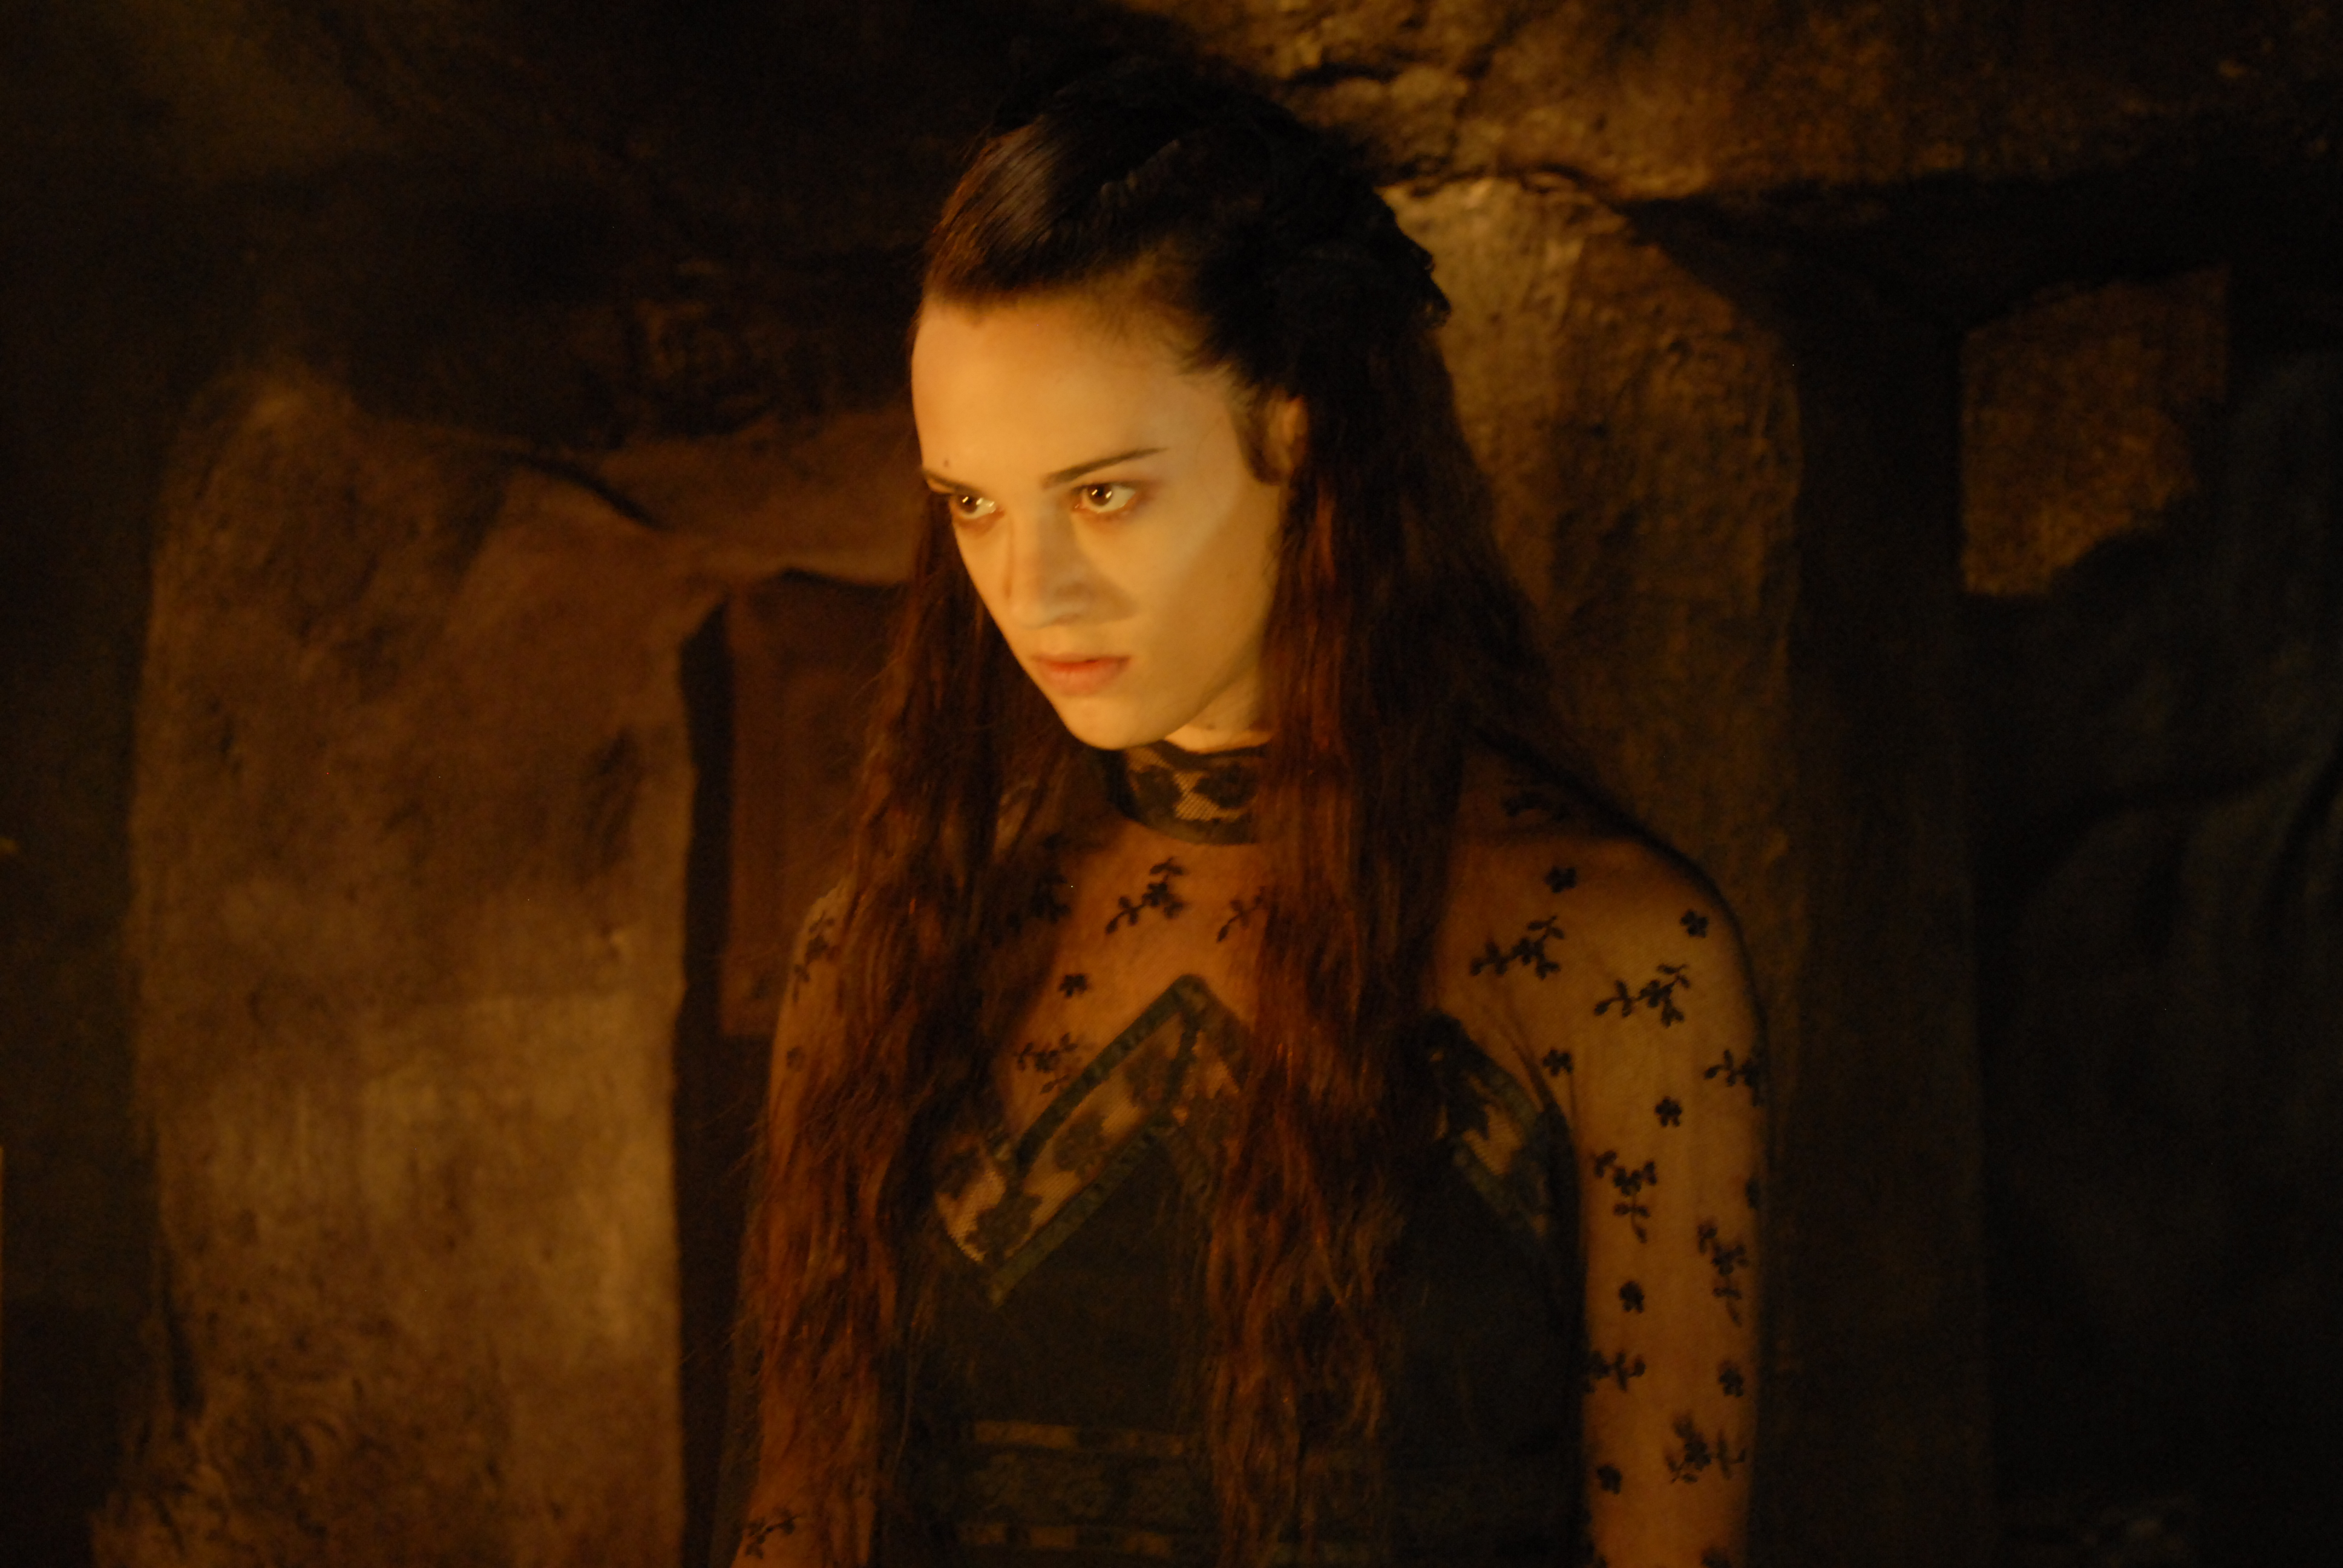 1. ASIA ARGENTO AS LUCY IN ARGENTO'S DRACULA 3D